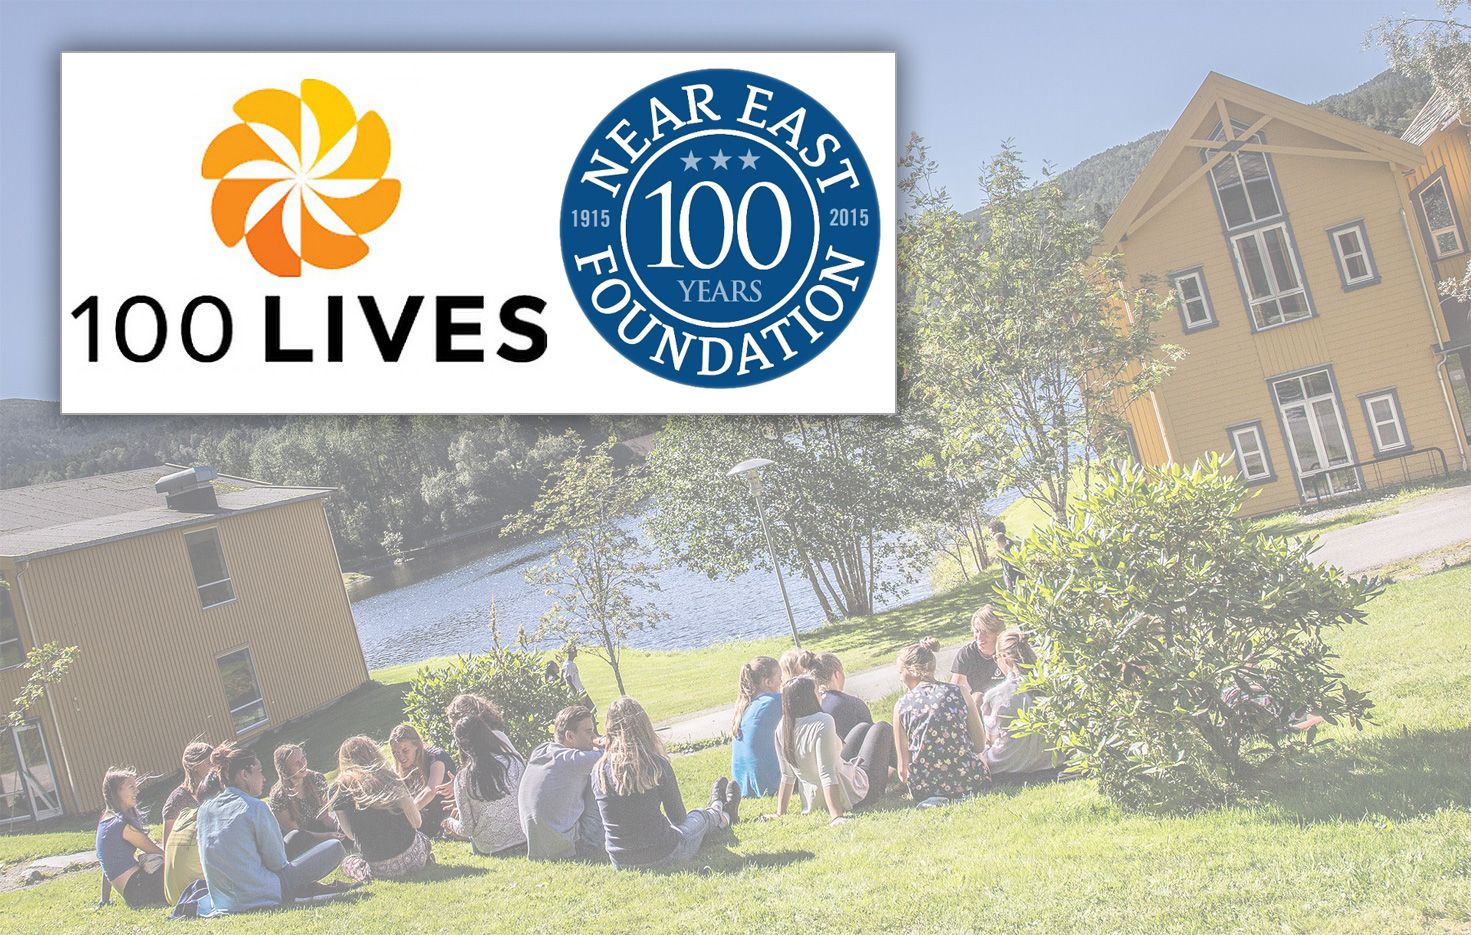 100 Lives and the Near East Foundation Partnership